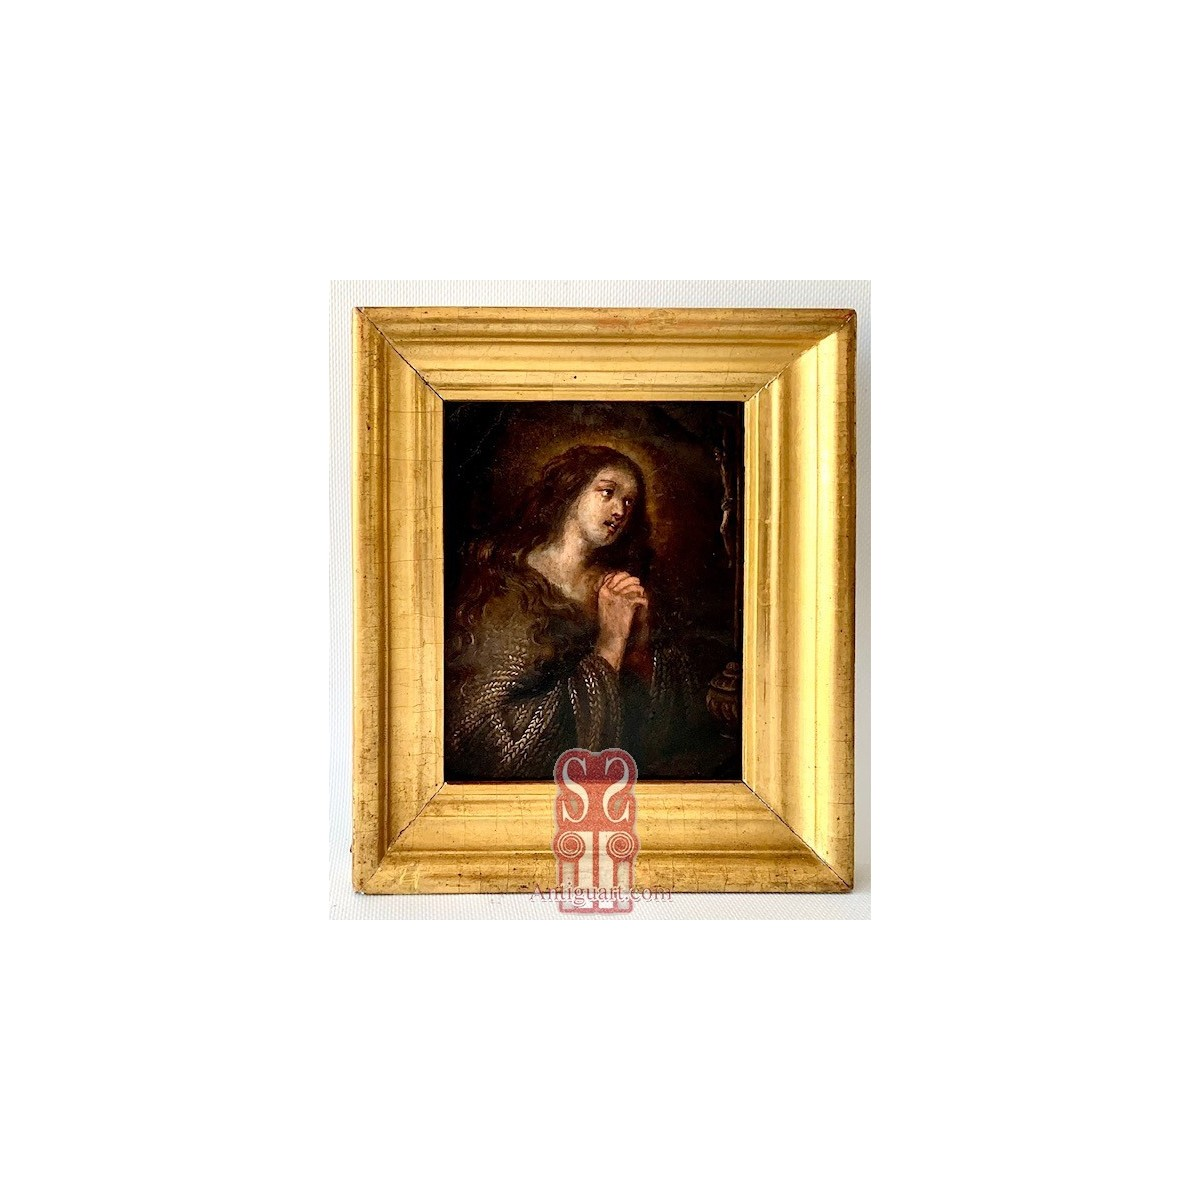 Penitent Mary Magdalene, 17th oil on copper